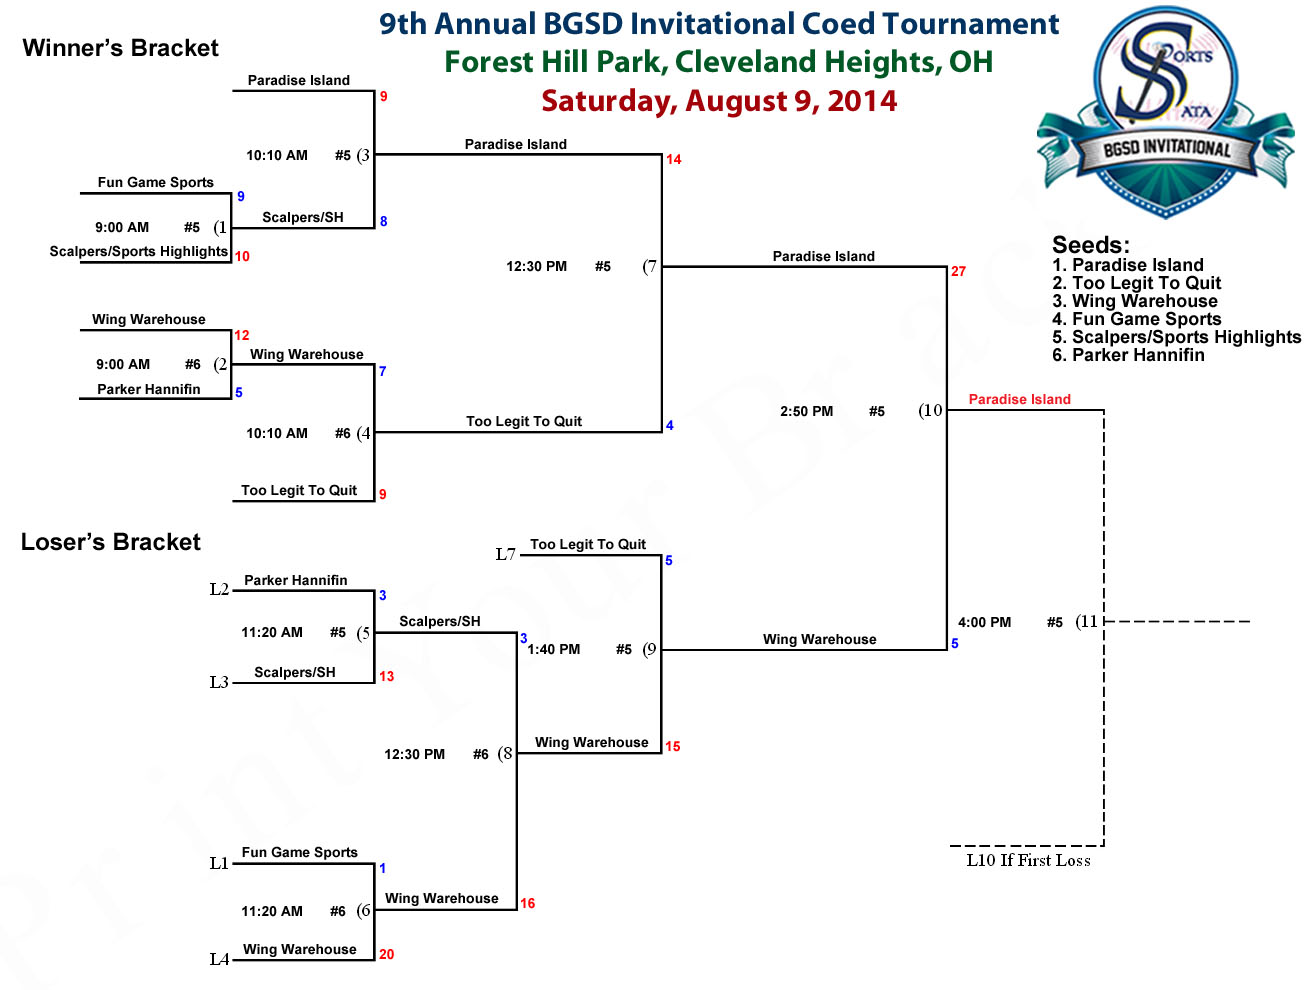 2014 BGSD Coed Tournament Bracket